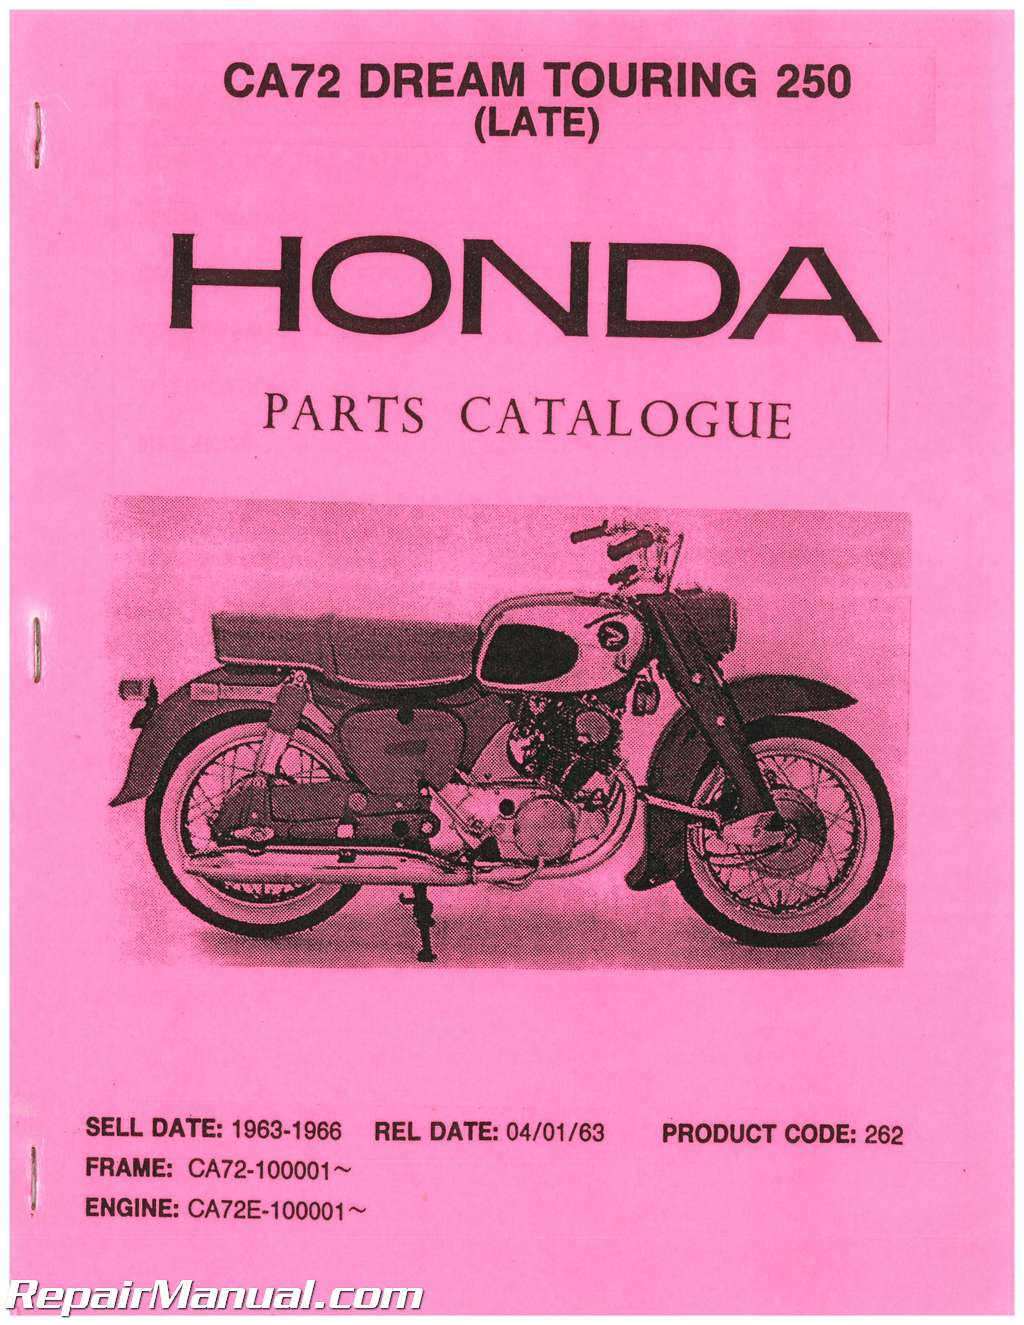 Honda Dream Parts Diagram Electrical Wiring Cl77 Ca72 Touring 250 Manual Rh Repairmanual Com Motorcycles